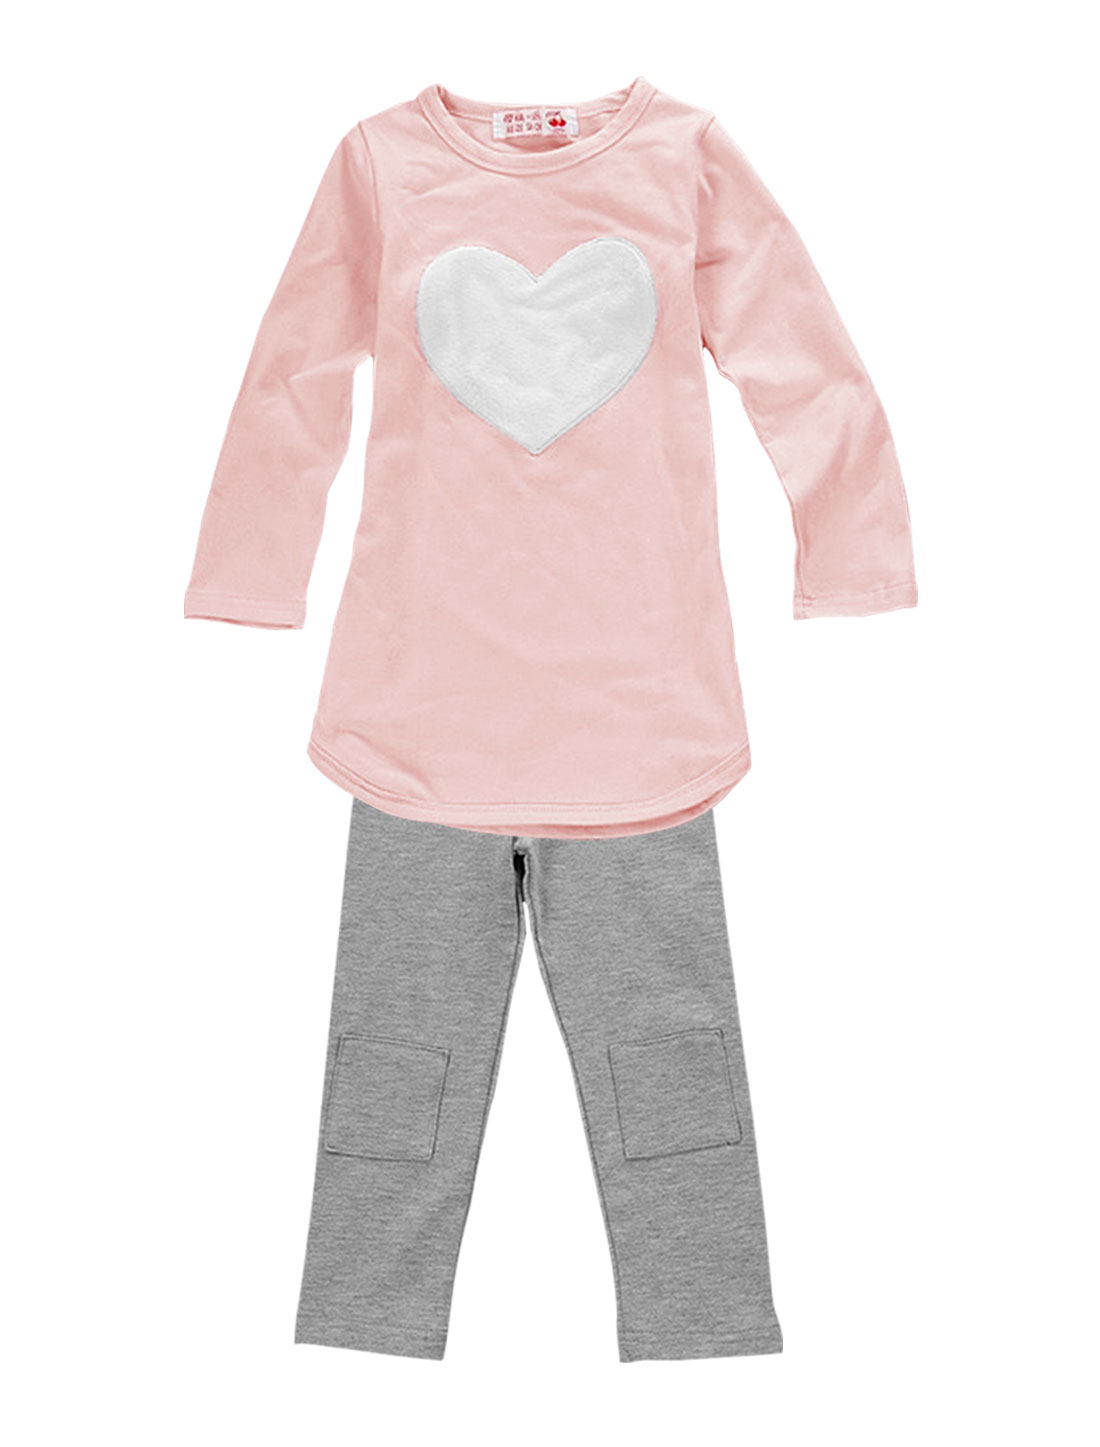 Girls Heart Shape Panel Top w Elastic Waist Pants 3-Pieces Sets Pink Gray 4T